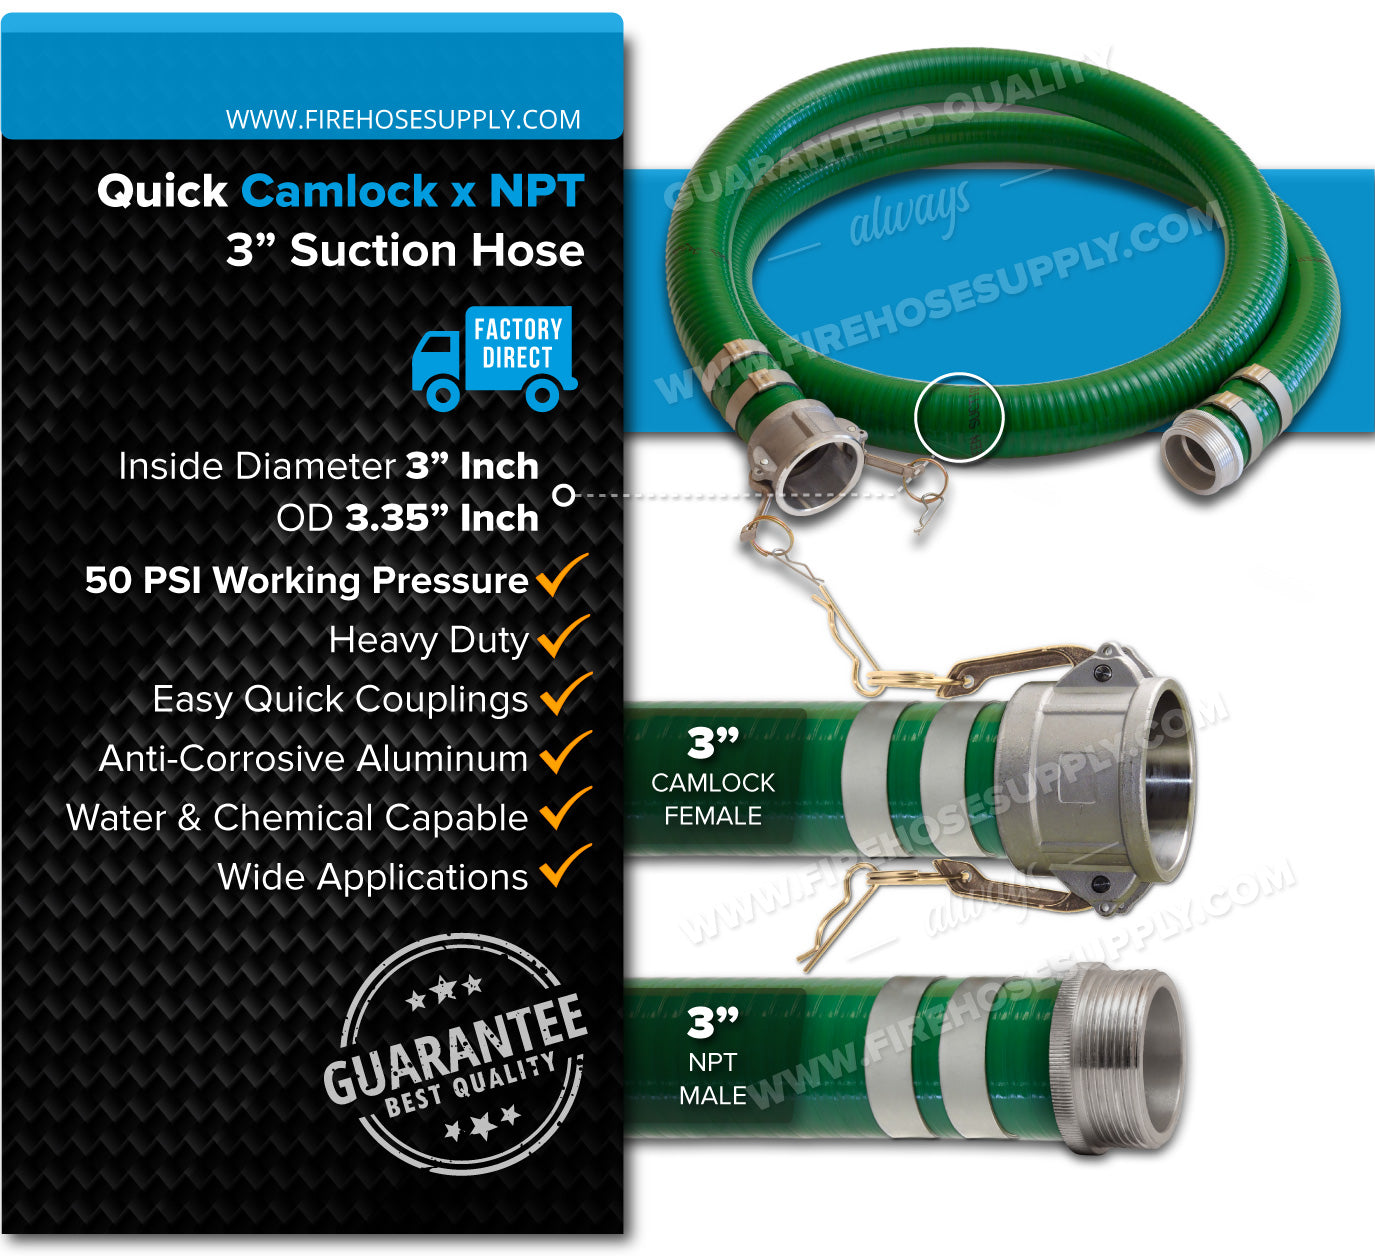 3 Inch Camlock Female x NPT Male Green Suction Hose Overview